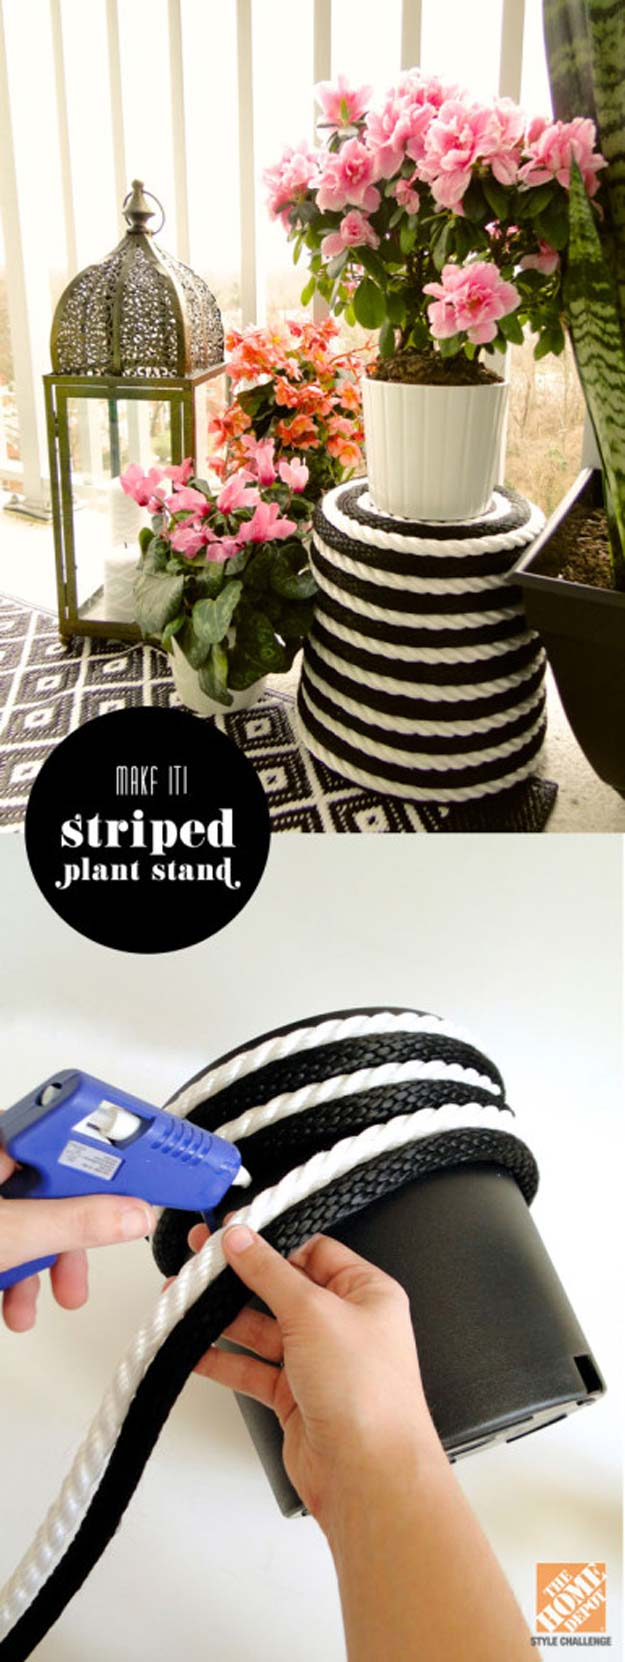 DIY Room Decor Ideas in Black and White - Stripe Plant Stand - Creative Home Decor and Room Accessories - Cheap and Easy Projects and Crafts for Wall Art, Bedding, Pillows, Rugs and Lighting - Fun Ideas and Projects for Teens, Apartments, Adutls and Teenagers http://diyprojectsforteens.com/diy-decor-black-white